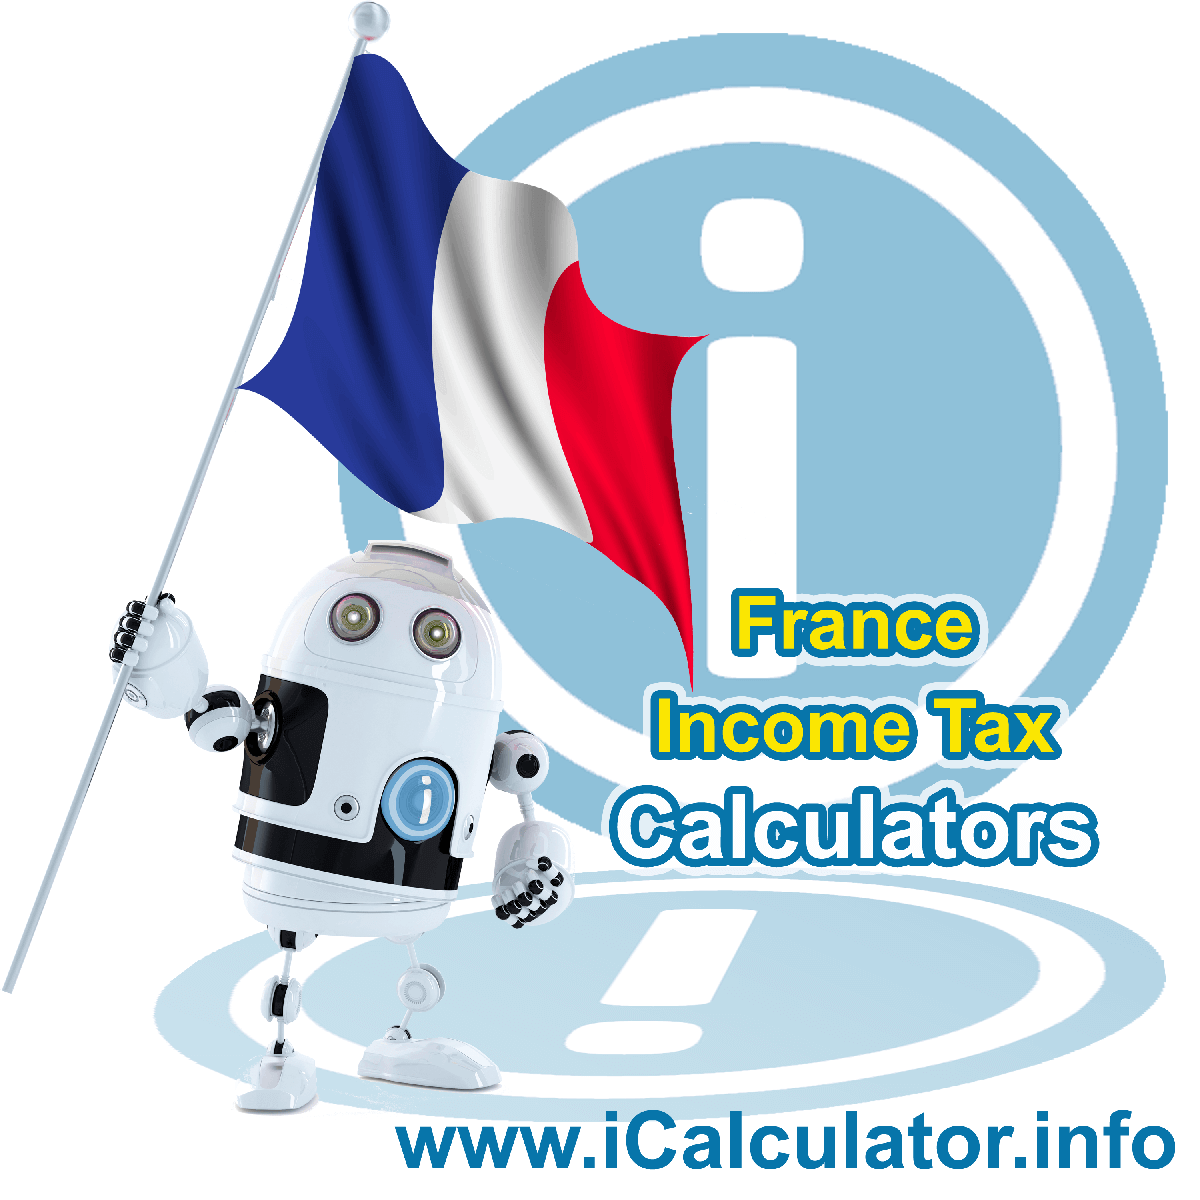 France Income Tax Calculator. This image shows a new employer in France calculating the annual payroll costs based on multiple payroll payments in one year in France using the France income tax calculator to understand their payroll costs in France in 2020